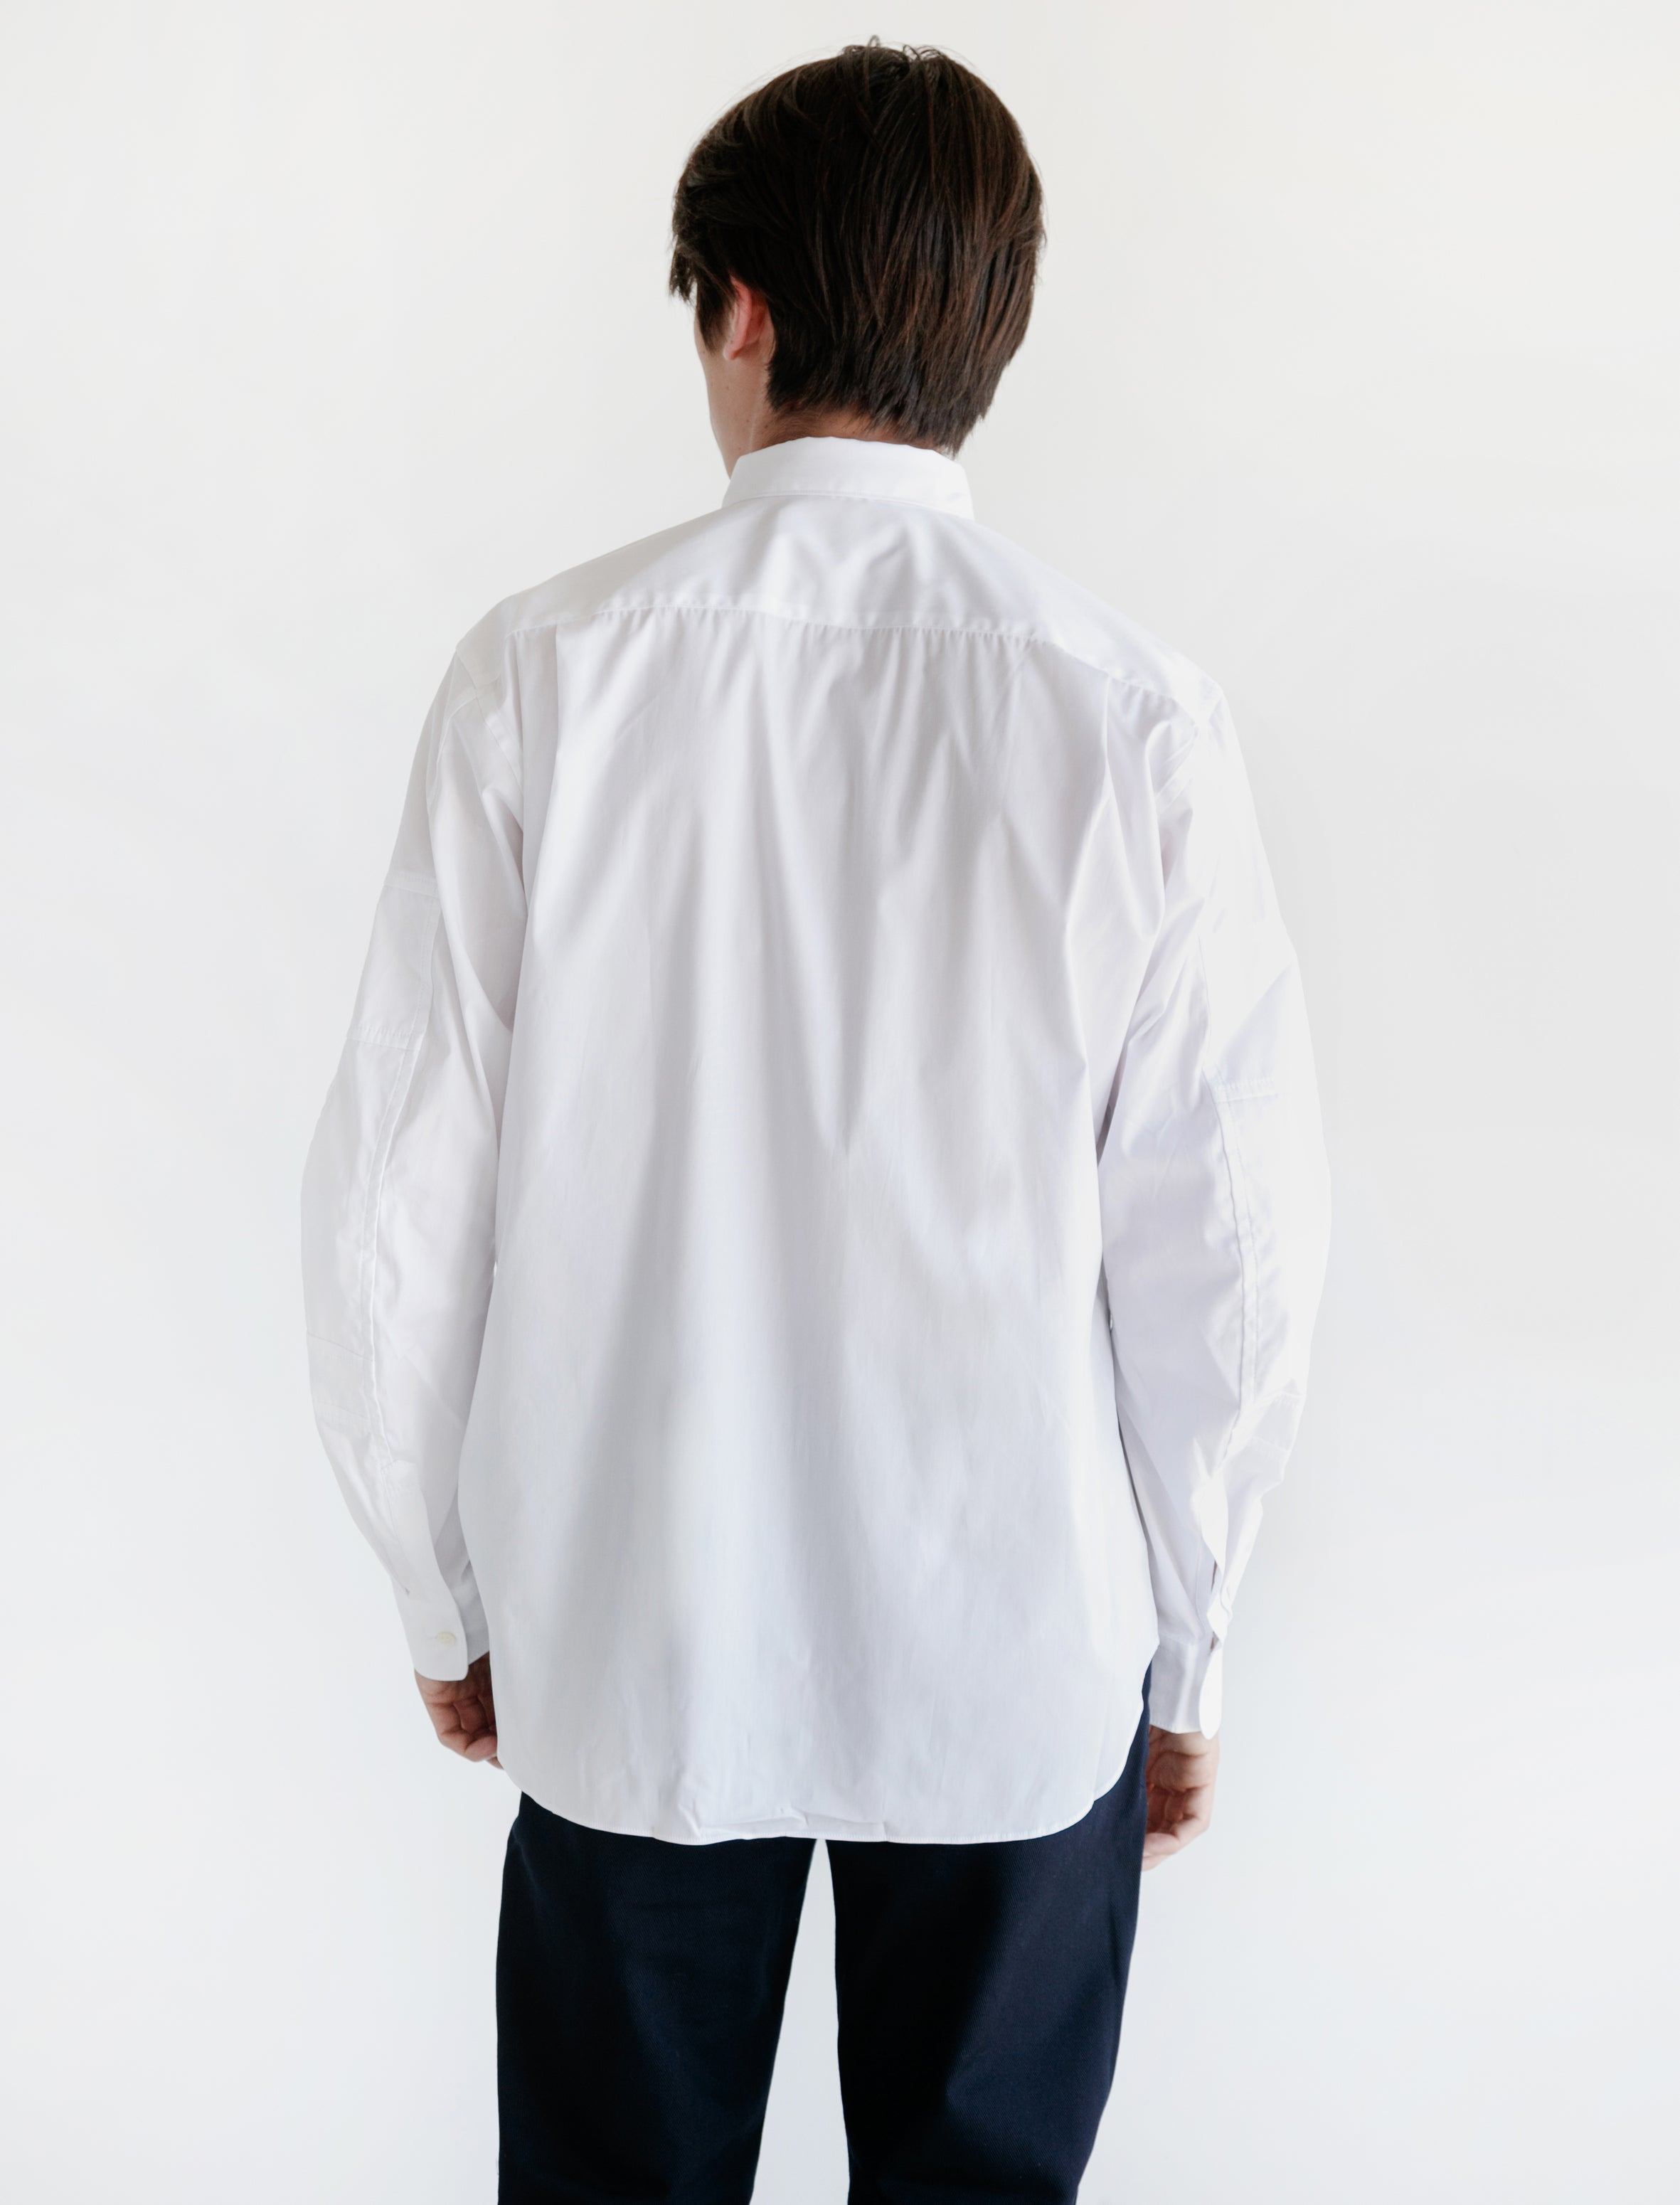 White Shirt Panelled Sleeve